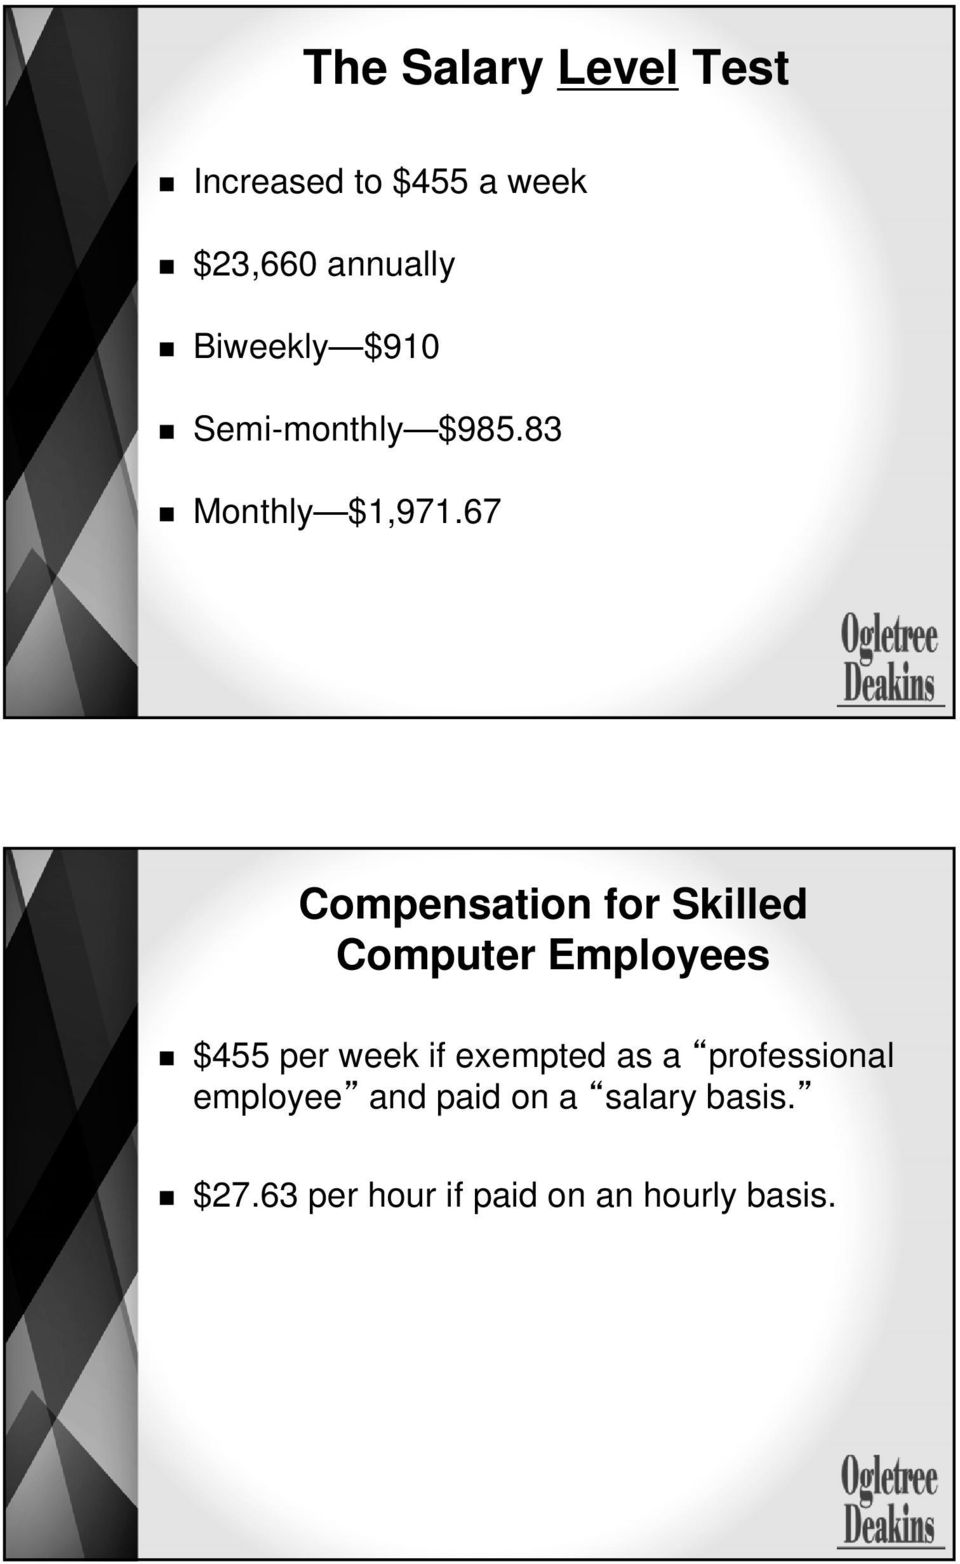 67 Compensation for Skilled Computer Employees $455 per week if